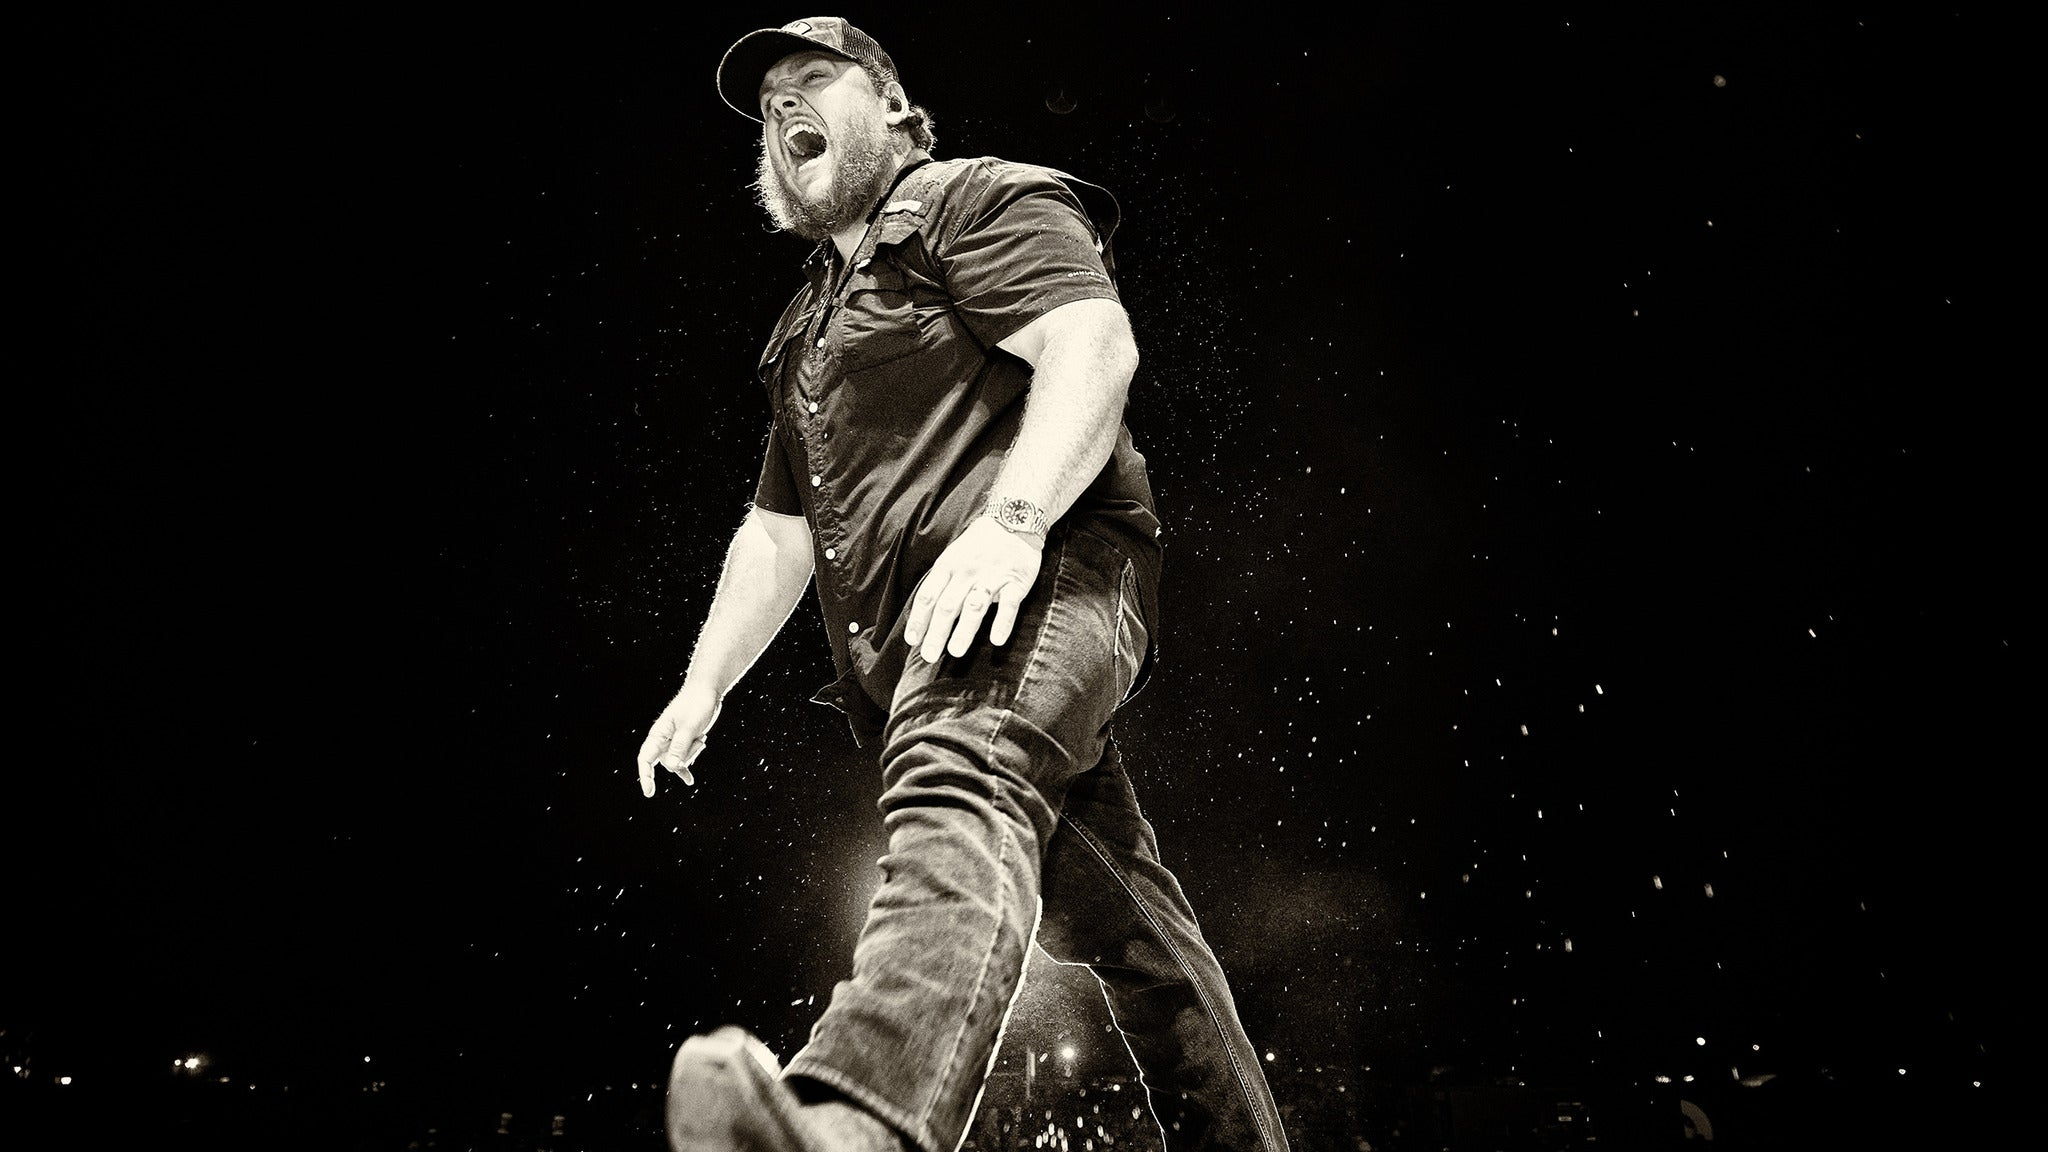 Luke Combs Canadian Tour 2022 presale passcode for performance tickets in Toronto, ON (Scotiabank Arena)